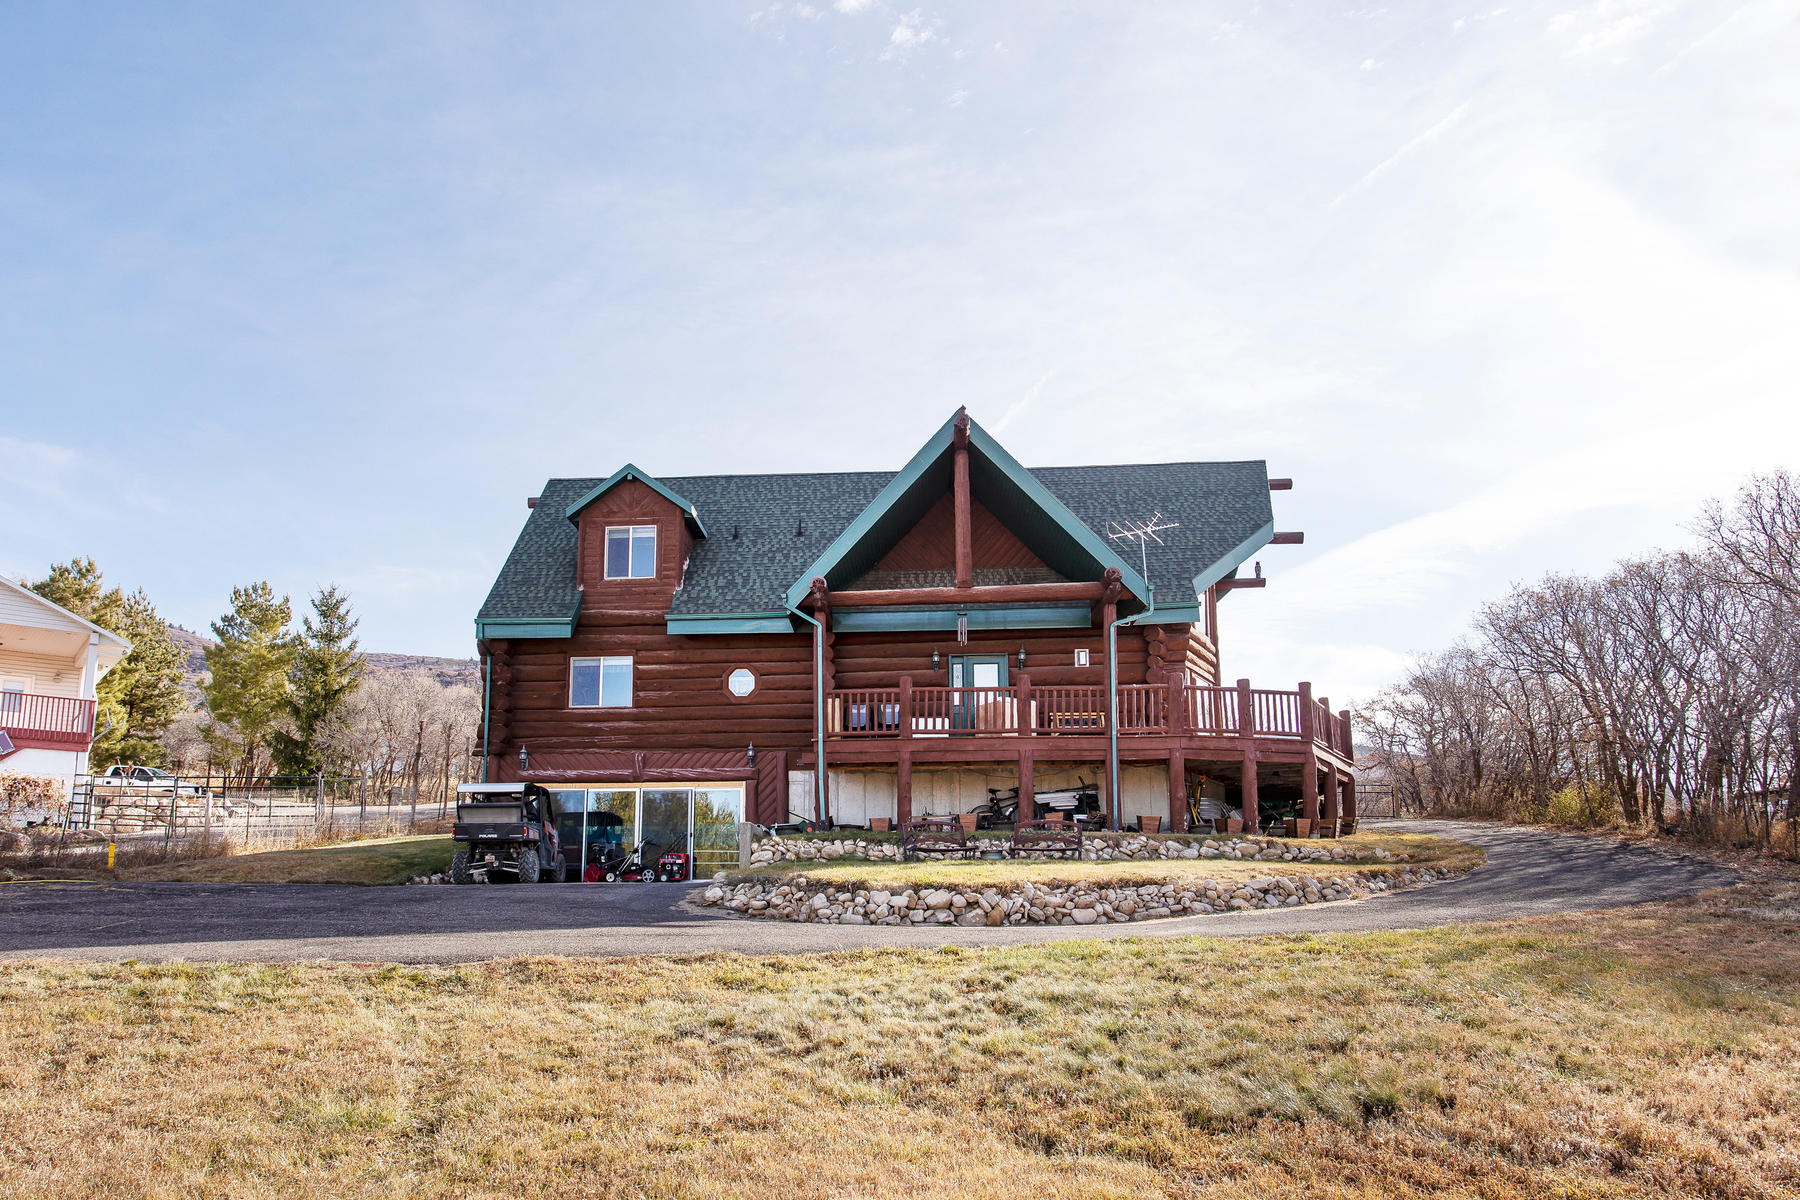 Single Family Homes for Sale at Clean Custom Log Home 24625 N 11875 E Fairview, Utah 84629 United States